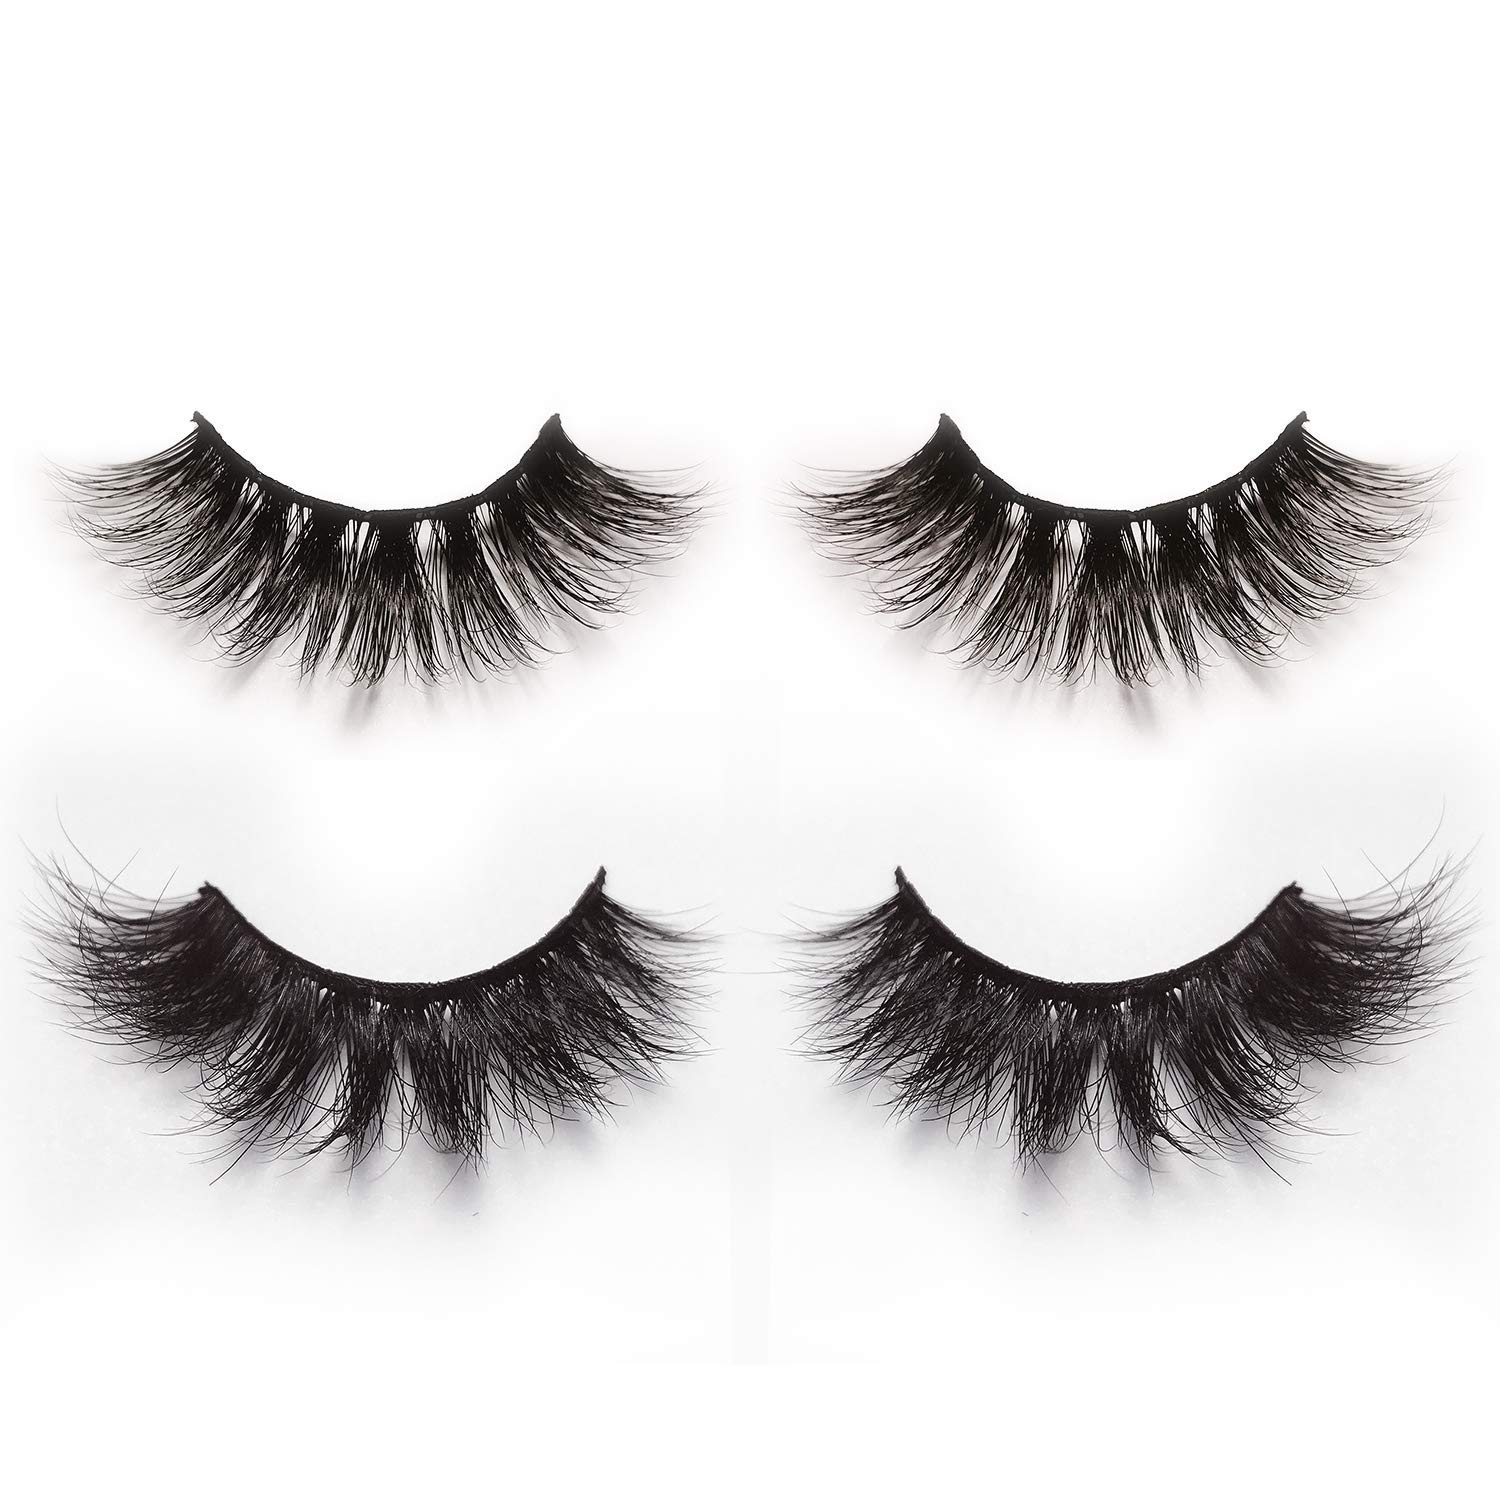 9b6420b5828 False Eyelashes Beauty: Buy Online from Fishpond.com.au